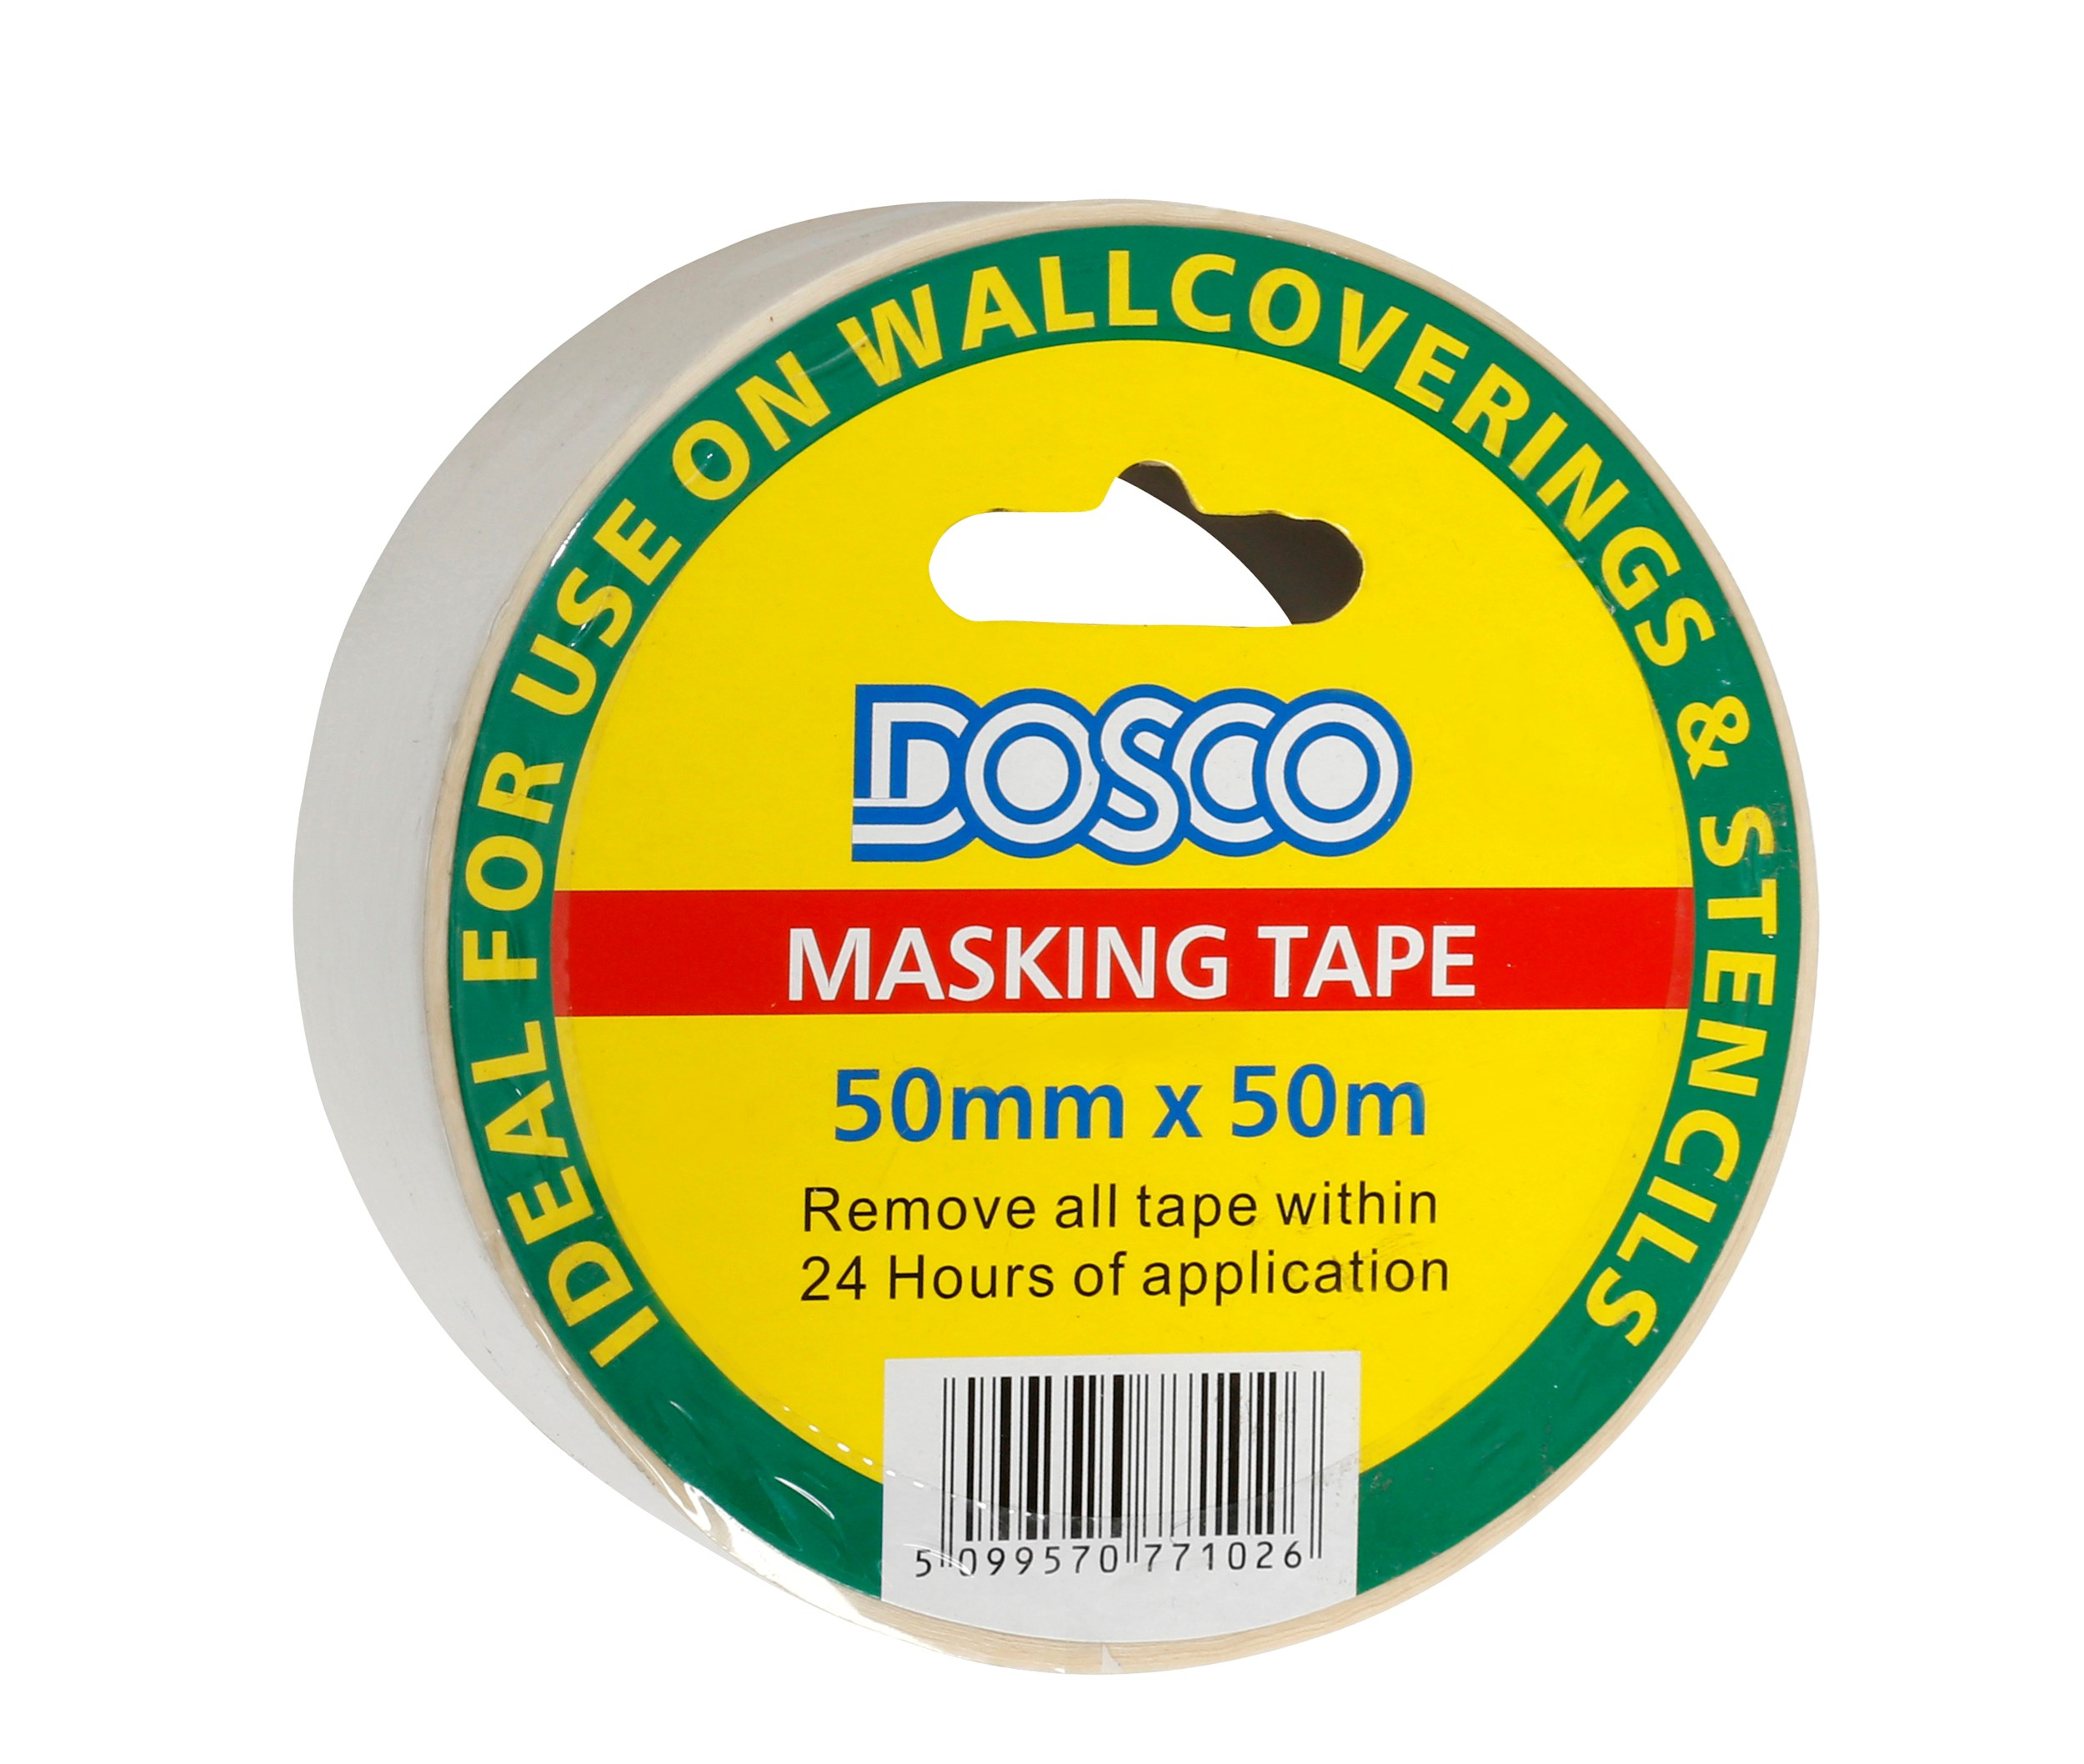 Dosco  Masking Tape - 50mm